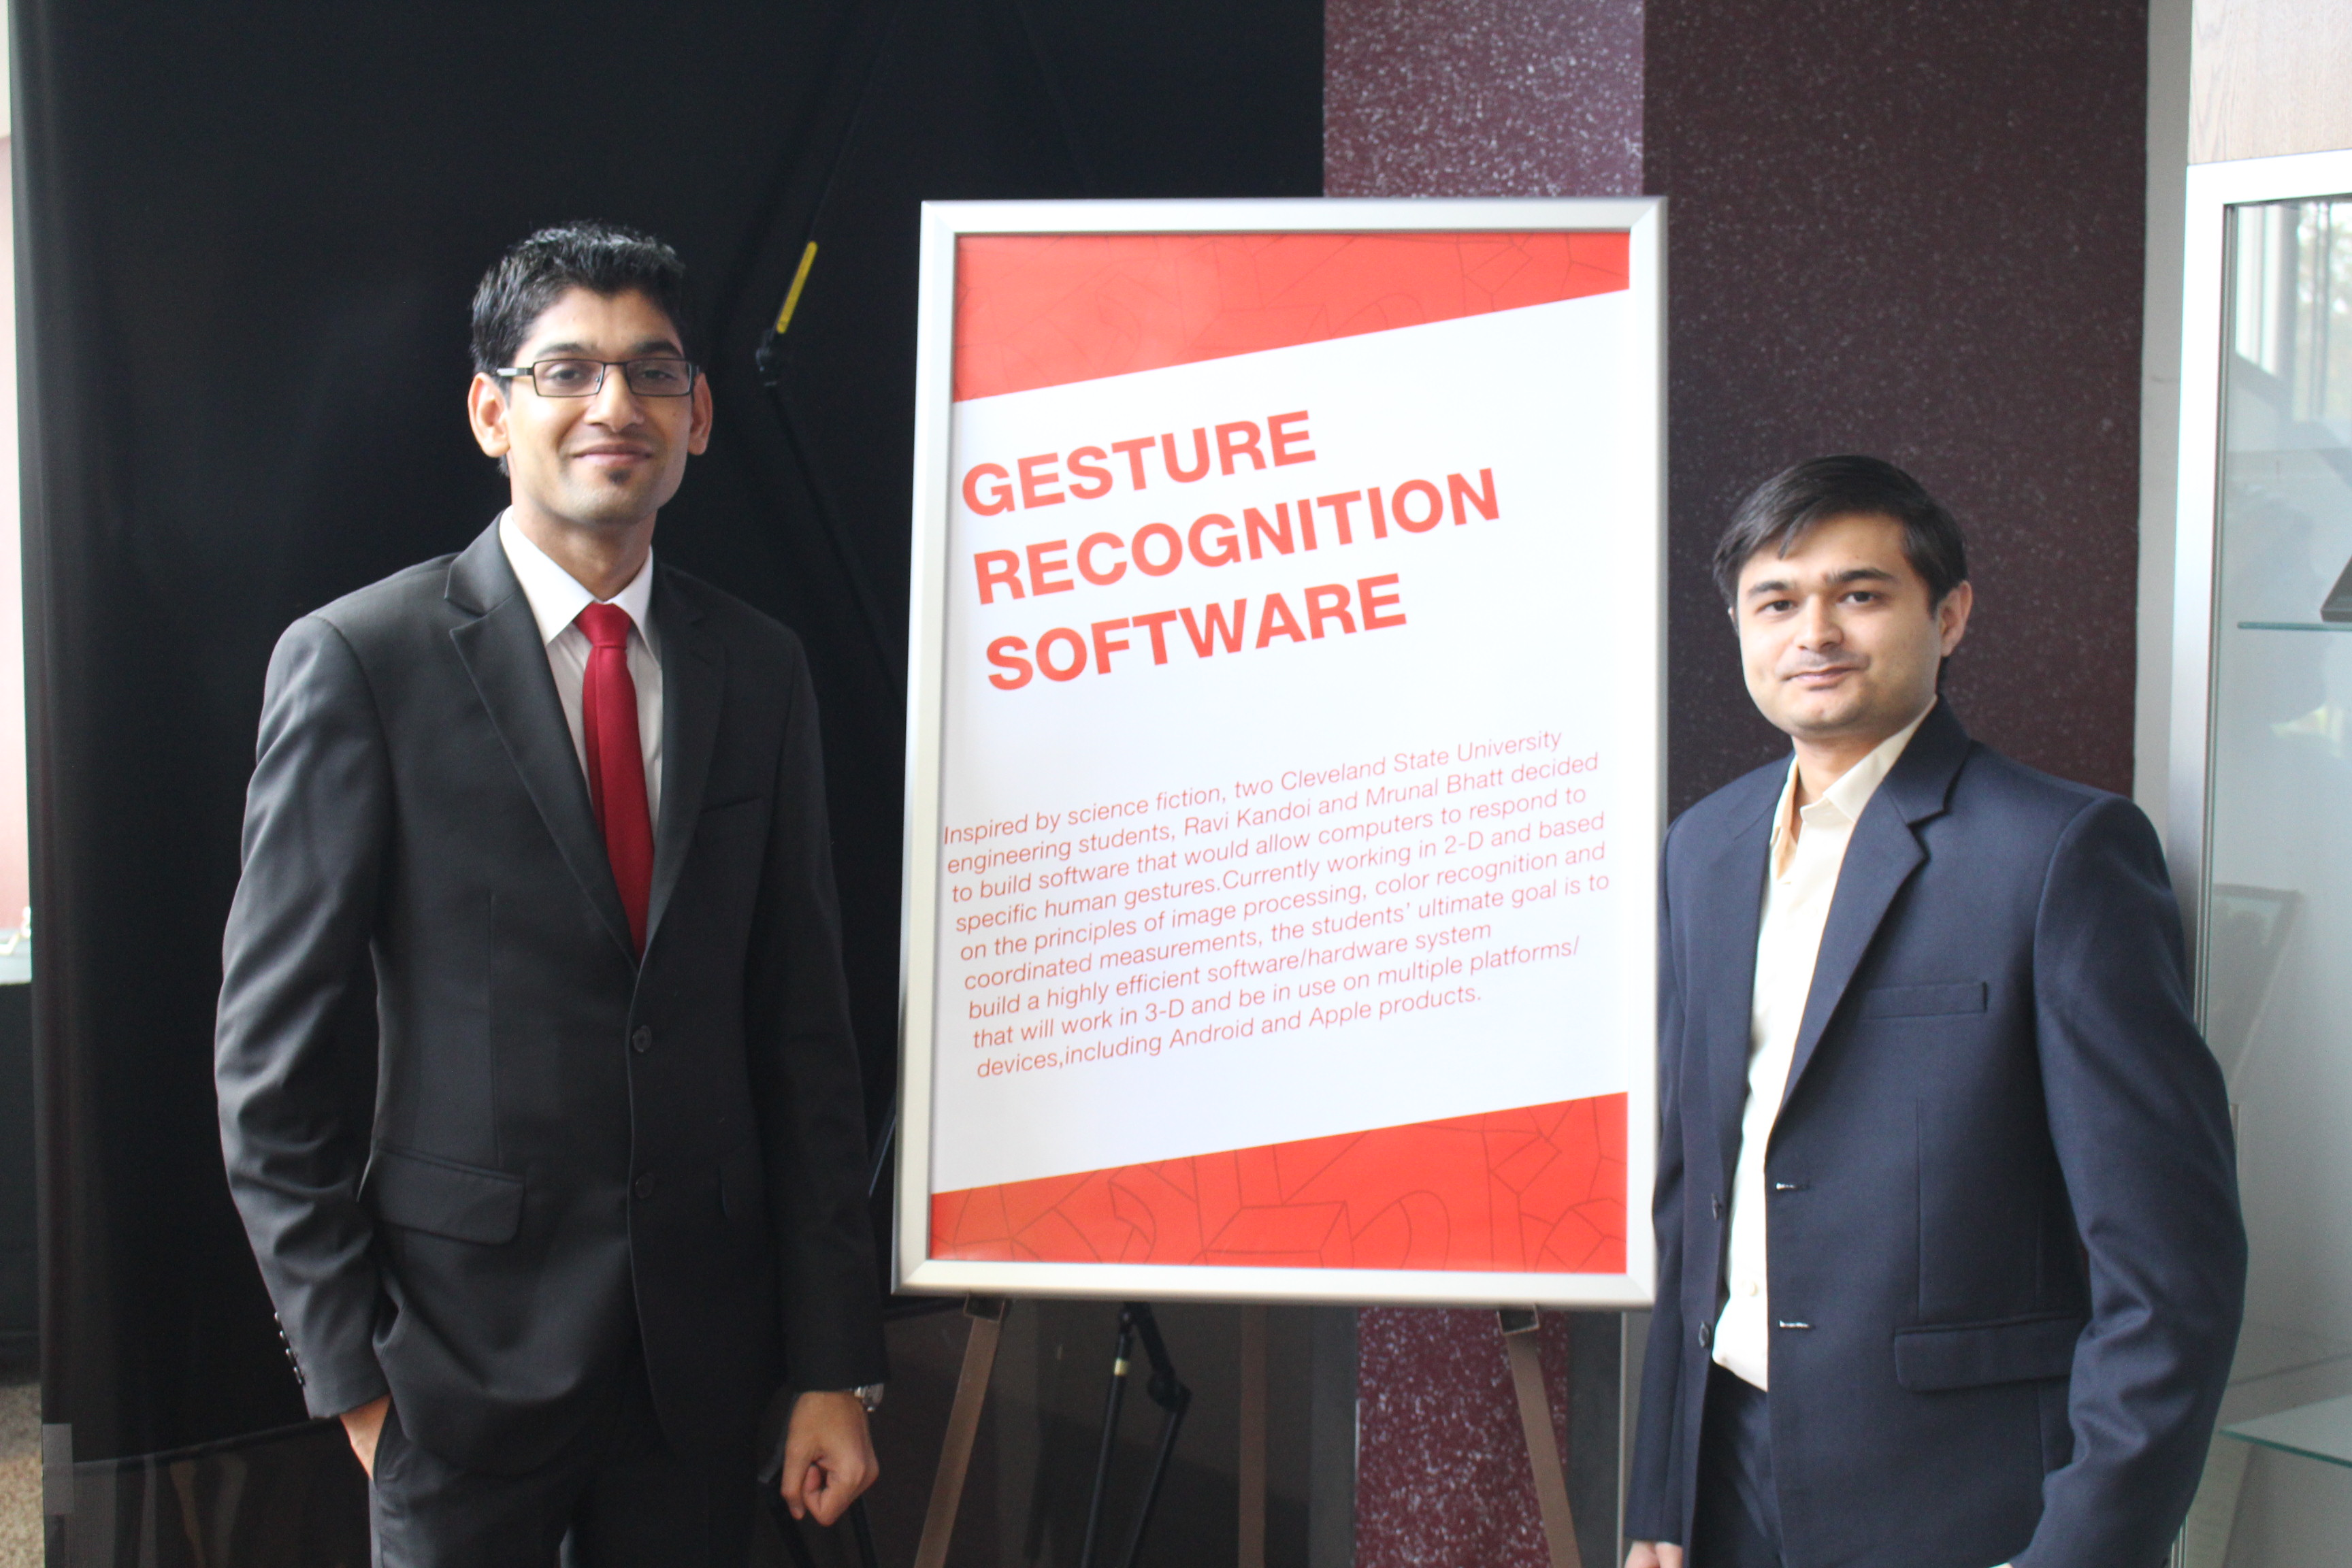 Ravi Kandoi (Washkewicz College of Engineering) and Mrunal Bhatt (Monte Ahuja College of Business)